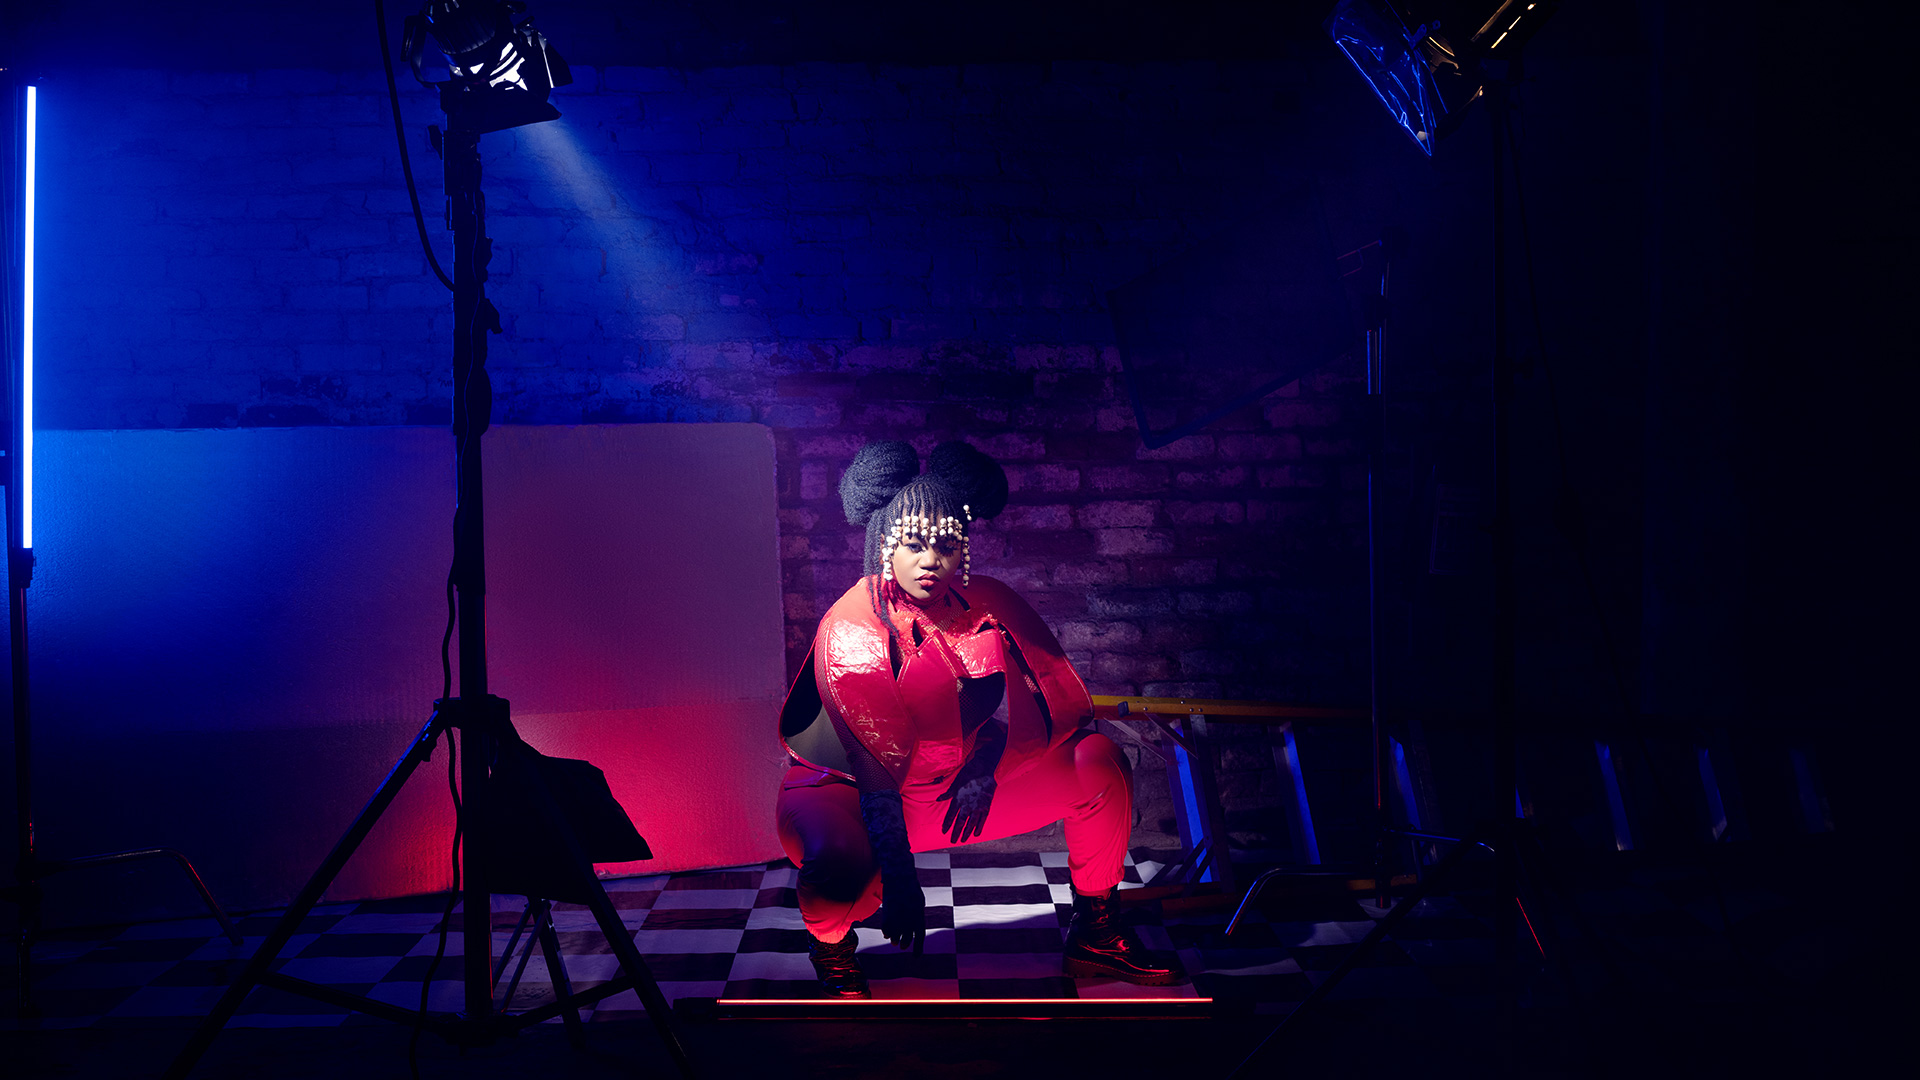 Busiswa crouching between two spotlights, dressed in red